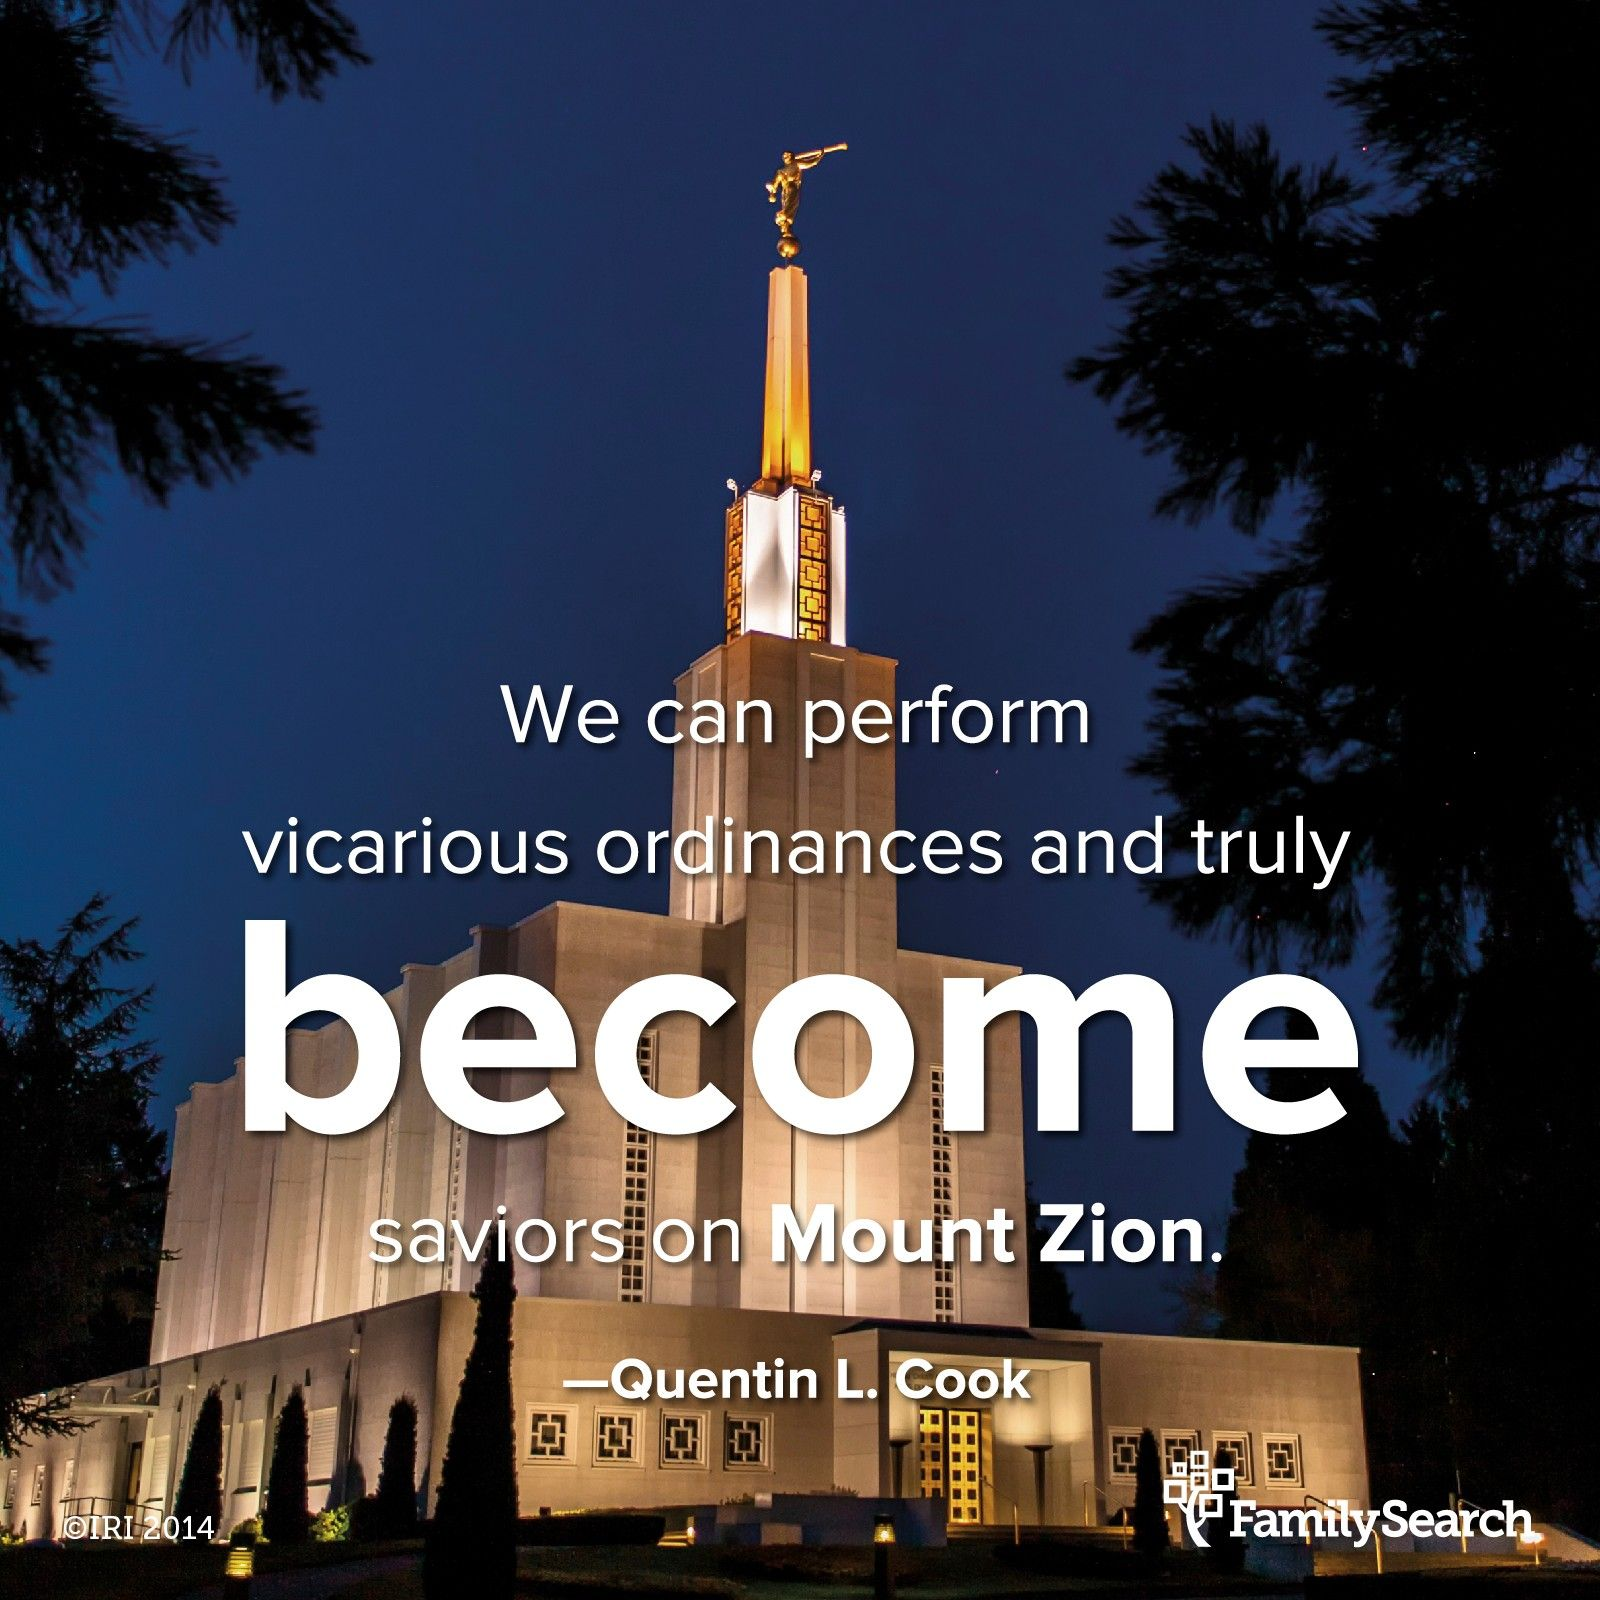 """""""Jesus Christ gave His life as a vicarious atonement. He resolved the ultimate question raised by Job. He overcame death for all mankind, which we could not do for ourselves. We can, however, perform vicarious ordinances and truly become saviors on Mount Zion for our own families in order that we, with them, might be exalted as well as saved.""""—Elder Quentin L. Cook, """"Roots and Branches."""" To find family names that need temple ordinances, visit familysearch.org/findnames."""